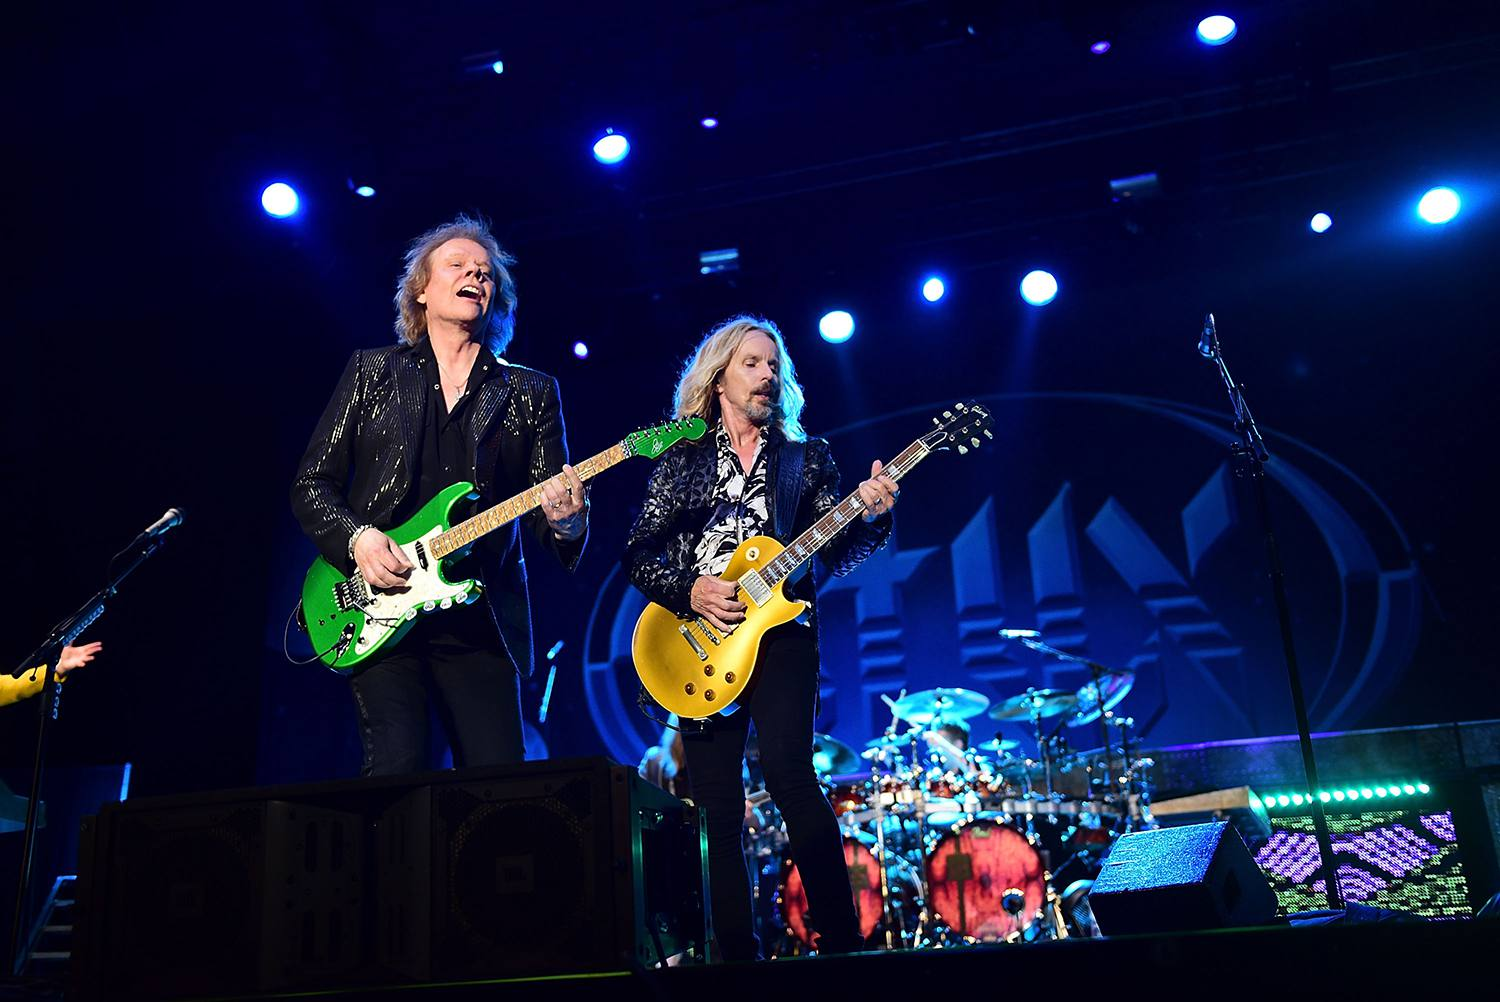 James 'J.Y.' Young and Tommy Shaw of the band Styx